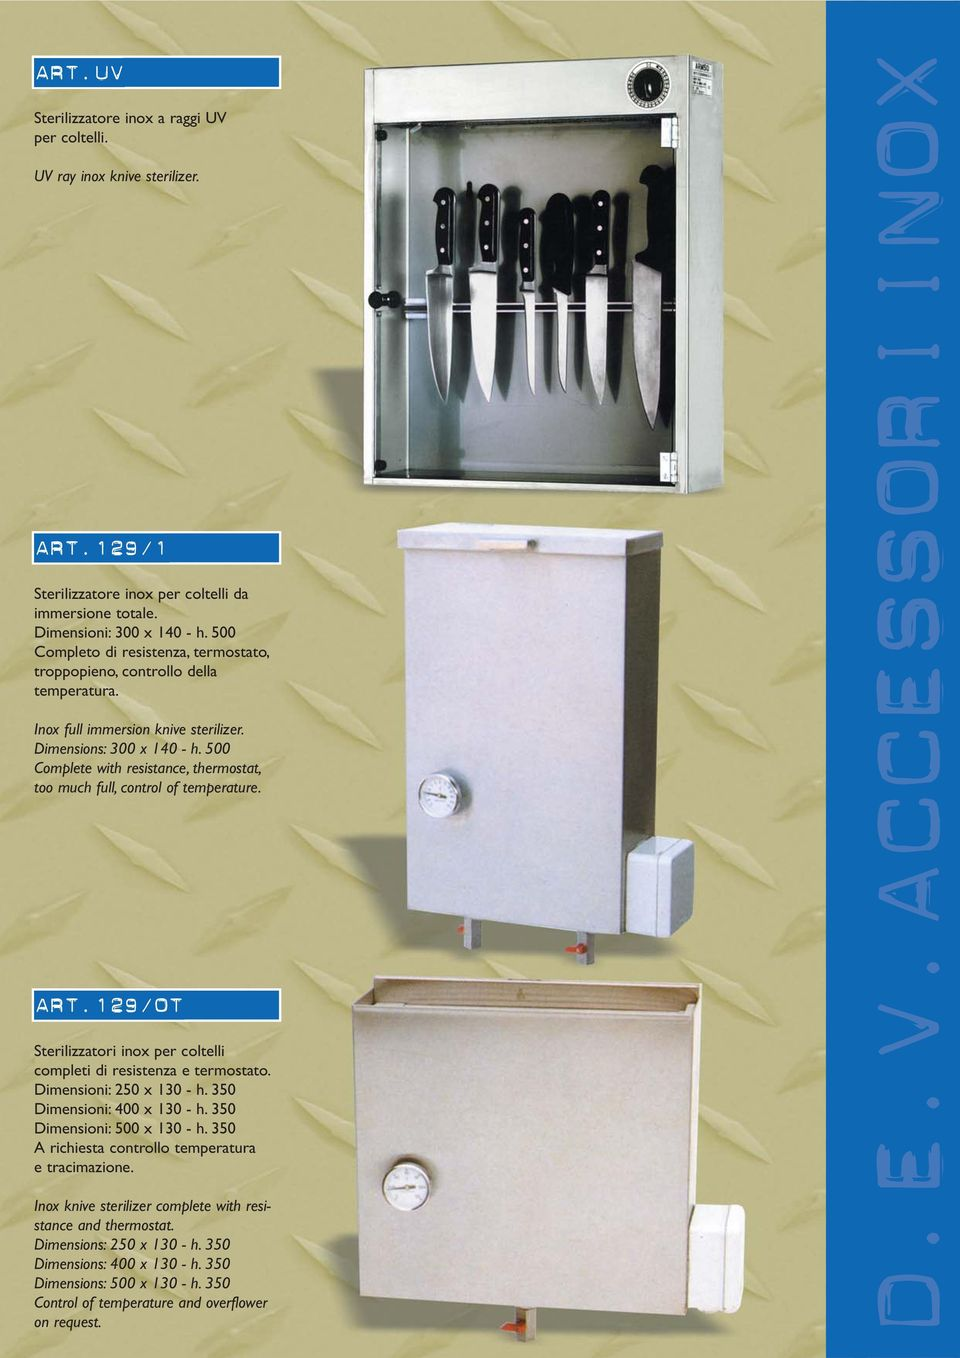 500 Complete with resistance, thermostat, too much full, control of temperature. ART.129/OT Sterilizzatori inox per coltelli completi di resistenza e termostato. Dimensioni: 250 x 130 - h.